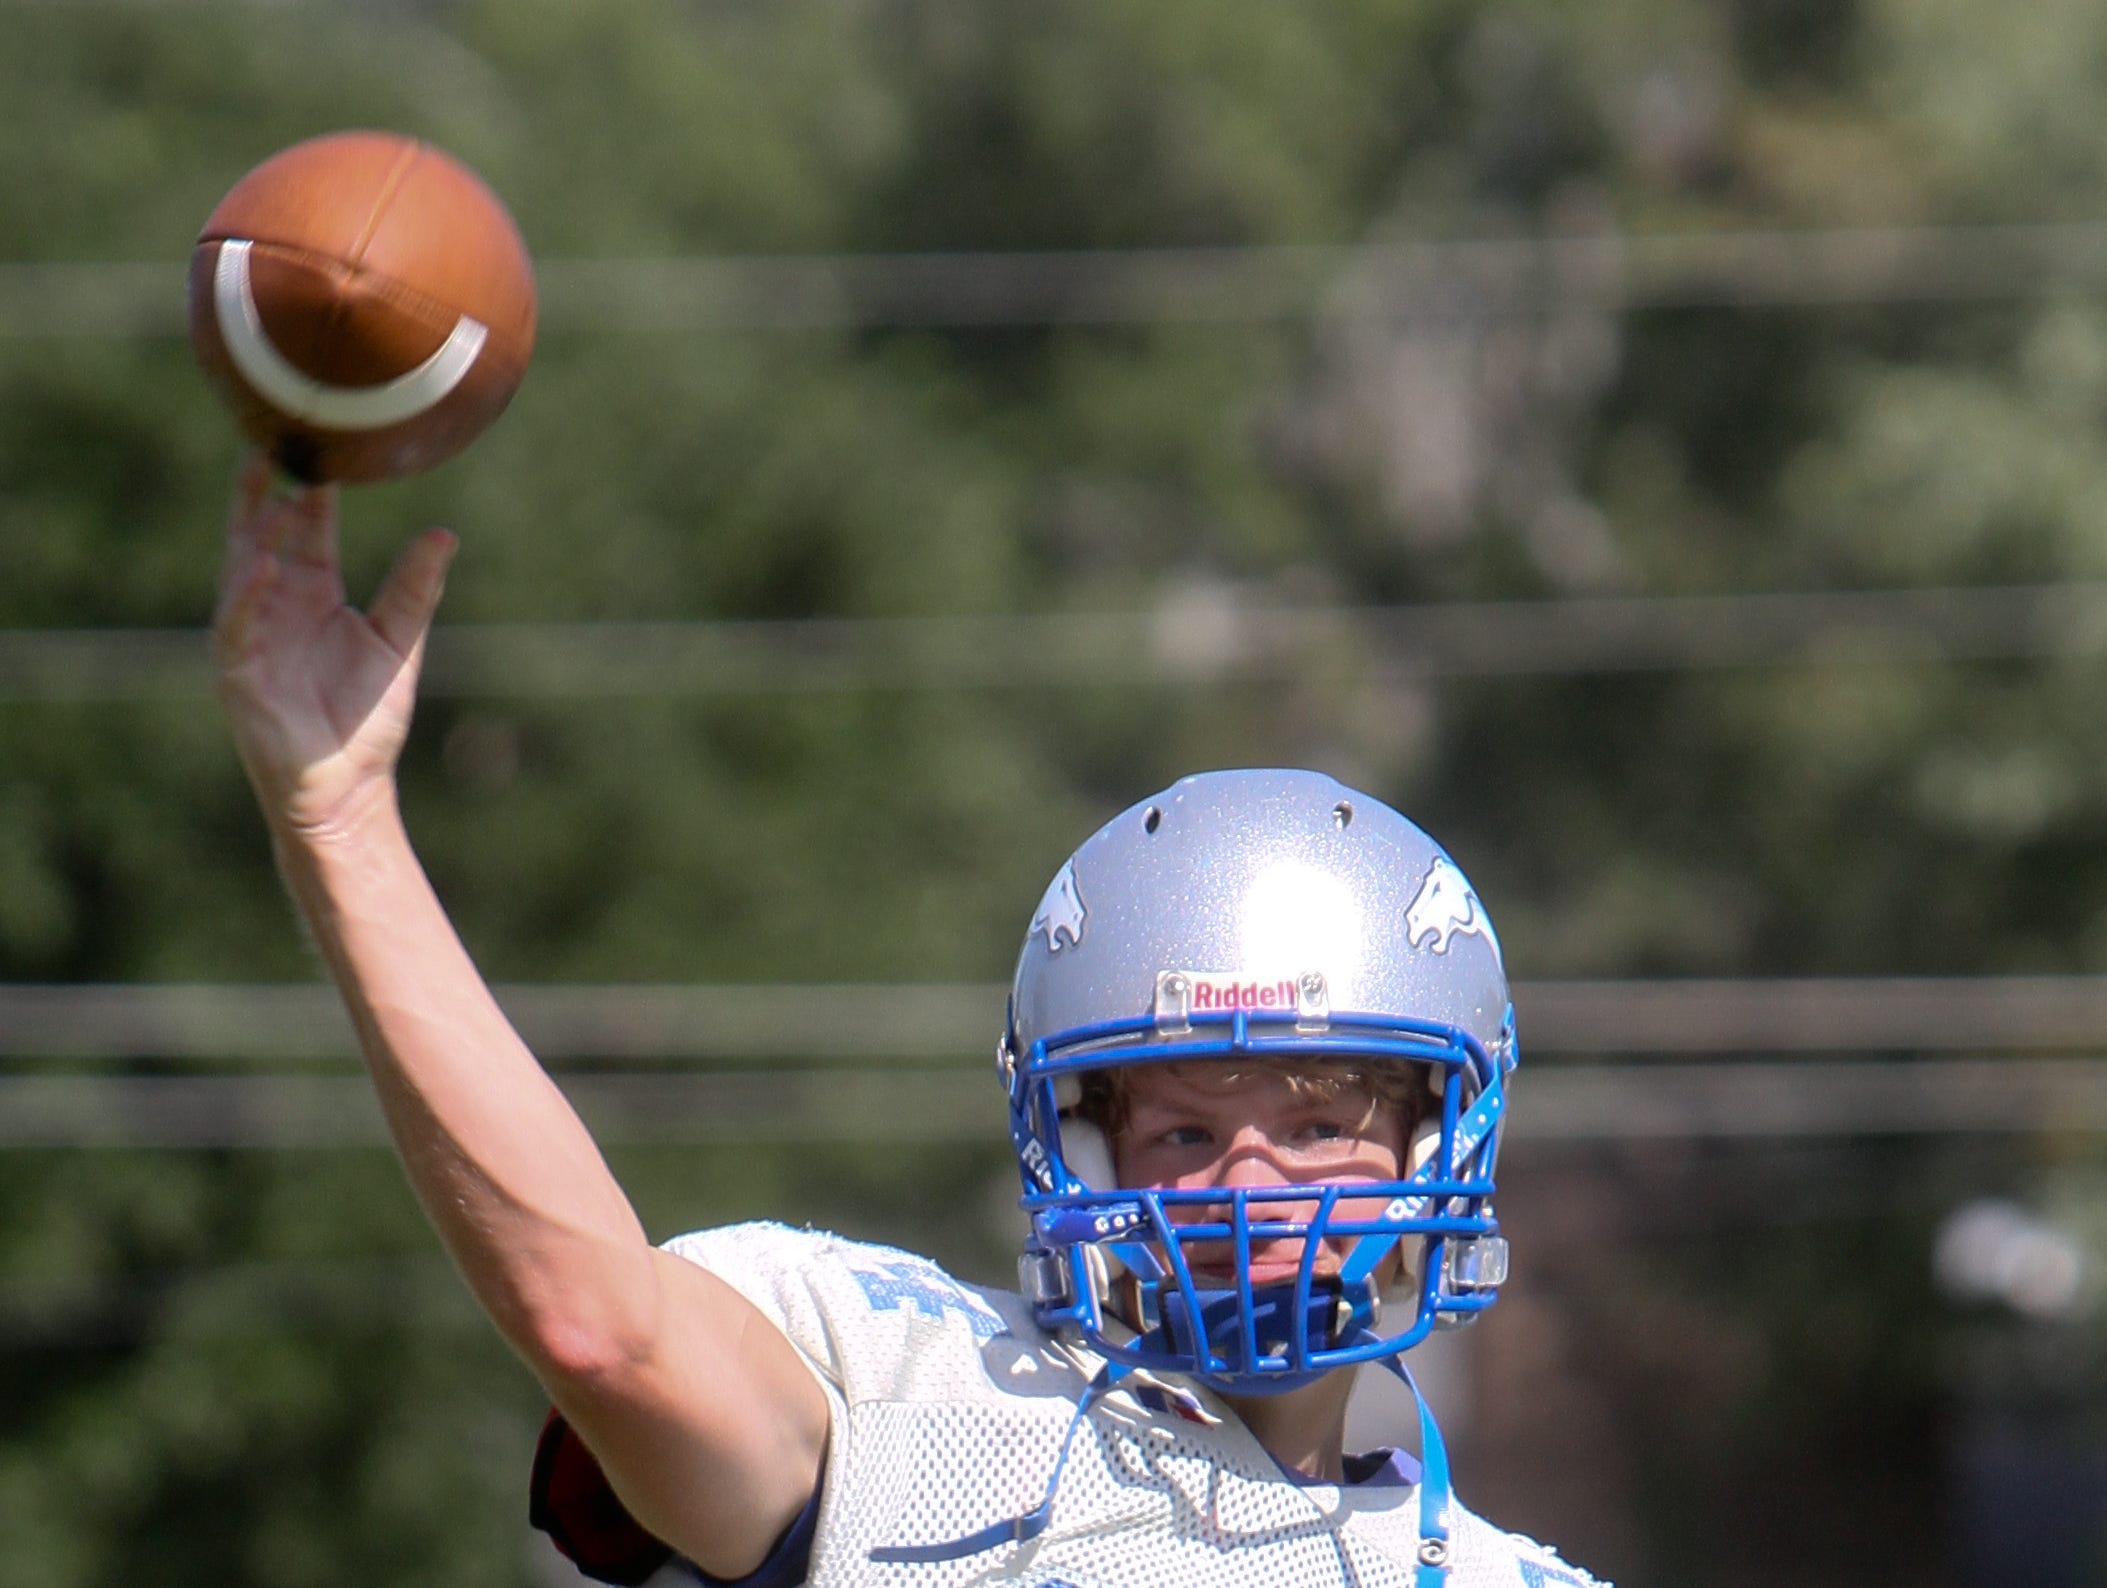 Senior J.P. Pierce will get the start at quarterback against Claiborne Academy in place of senior Brendan Macgregor, who is being held out with a knee injury.